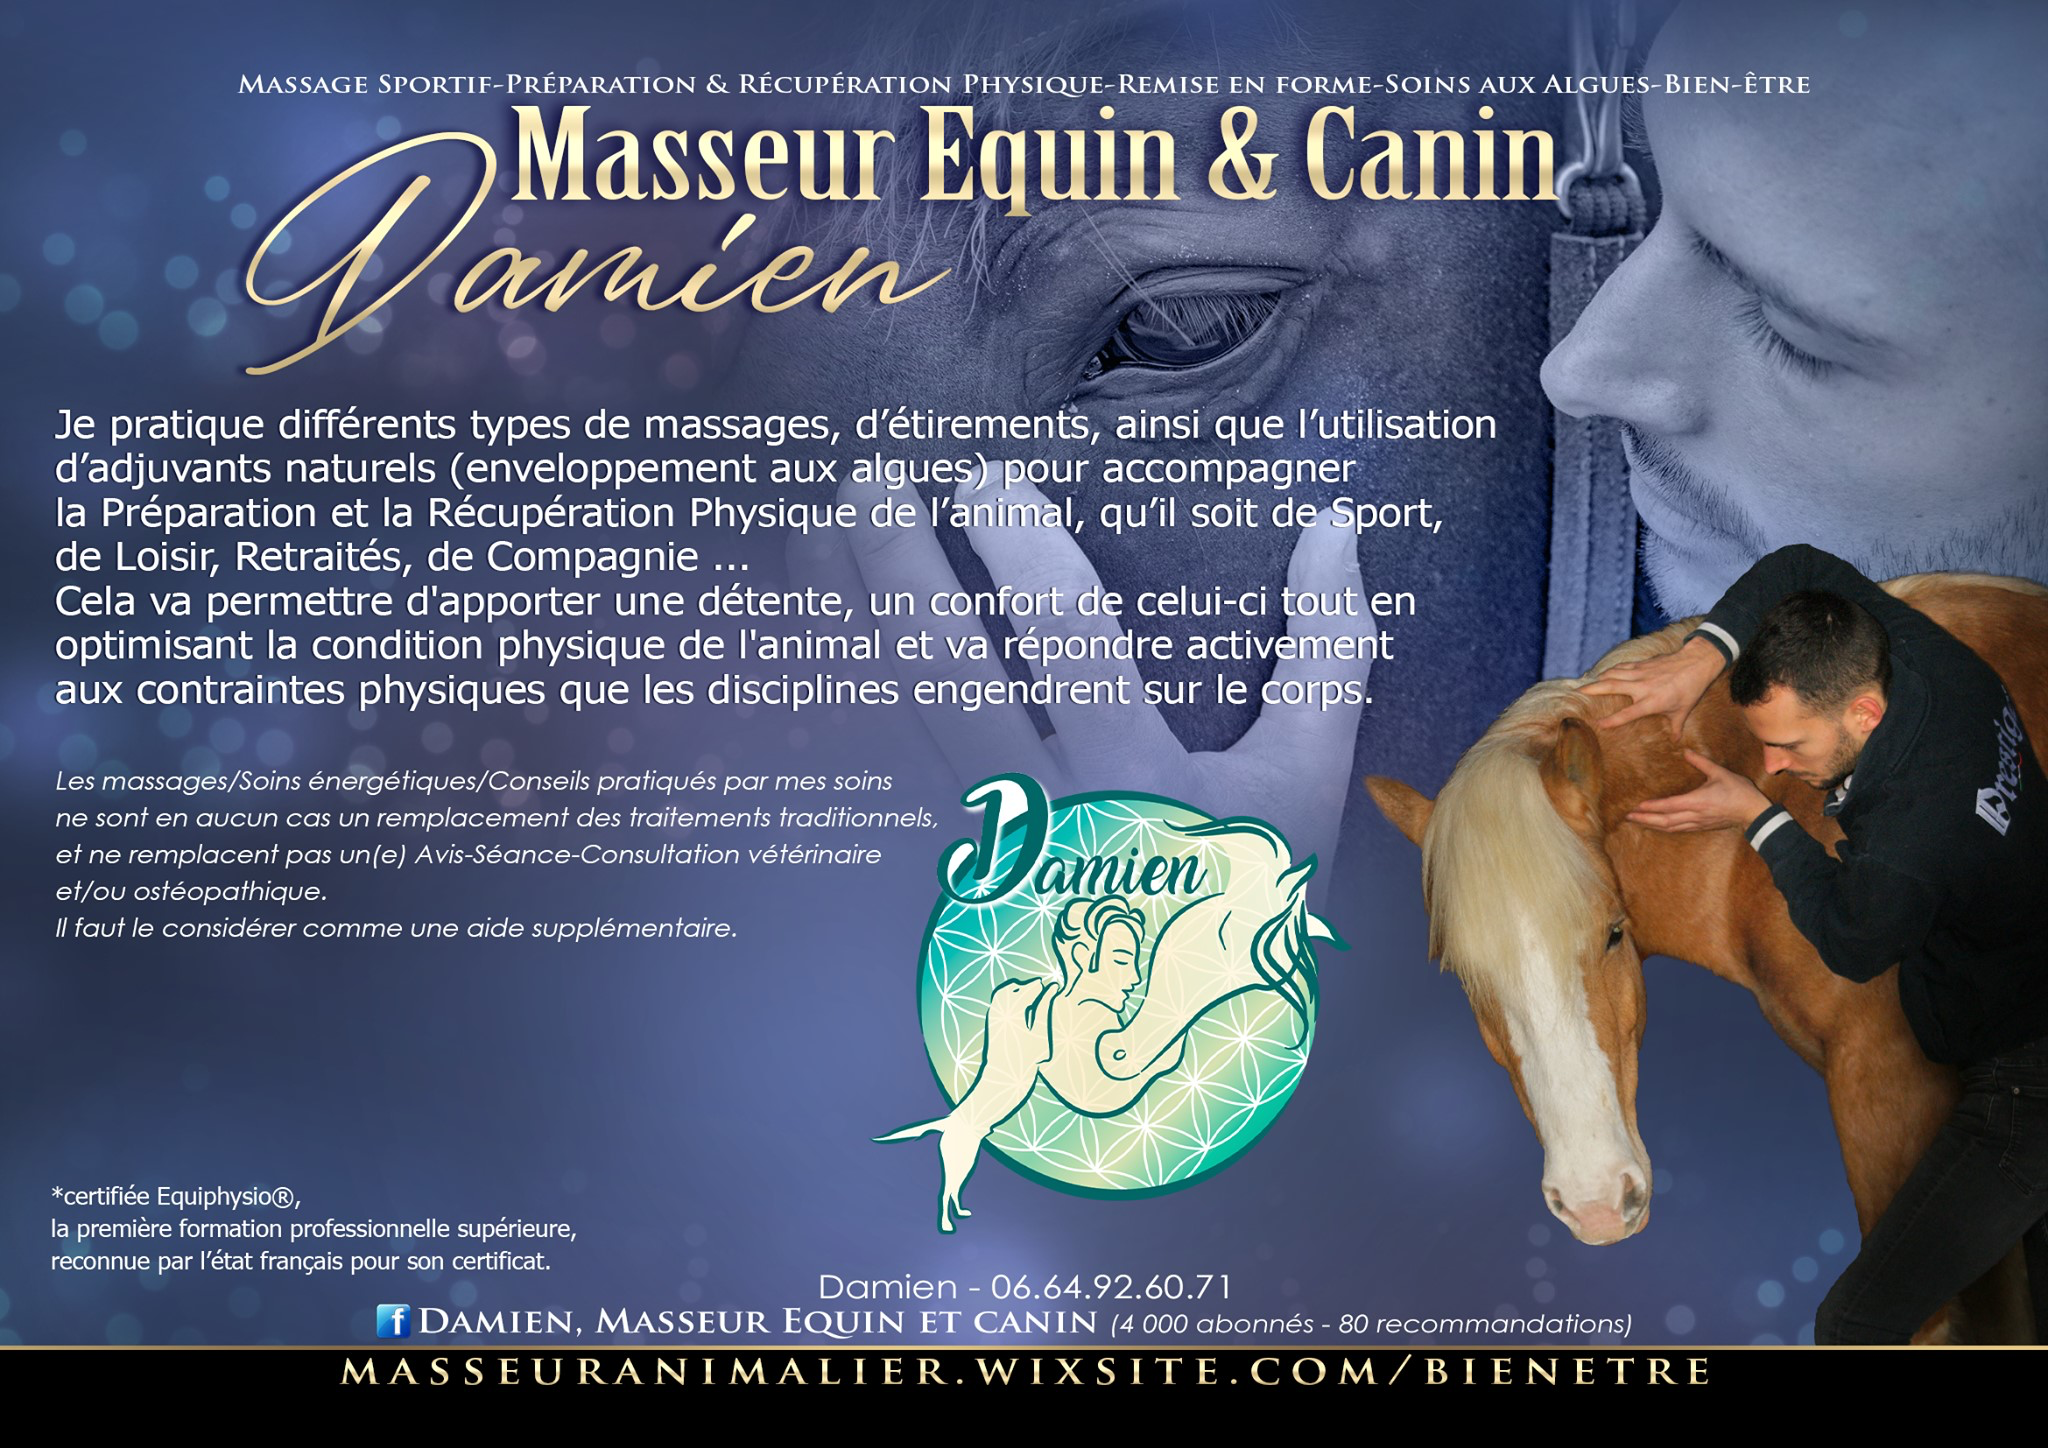 photo de couverture -Damien, Masseur Equin et Canin